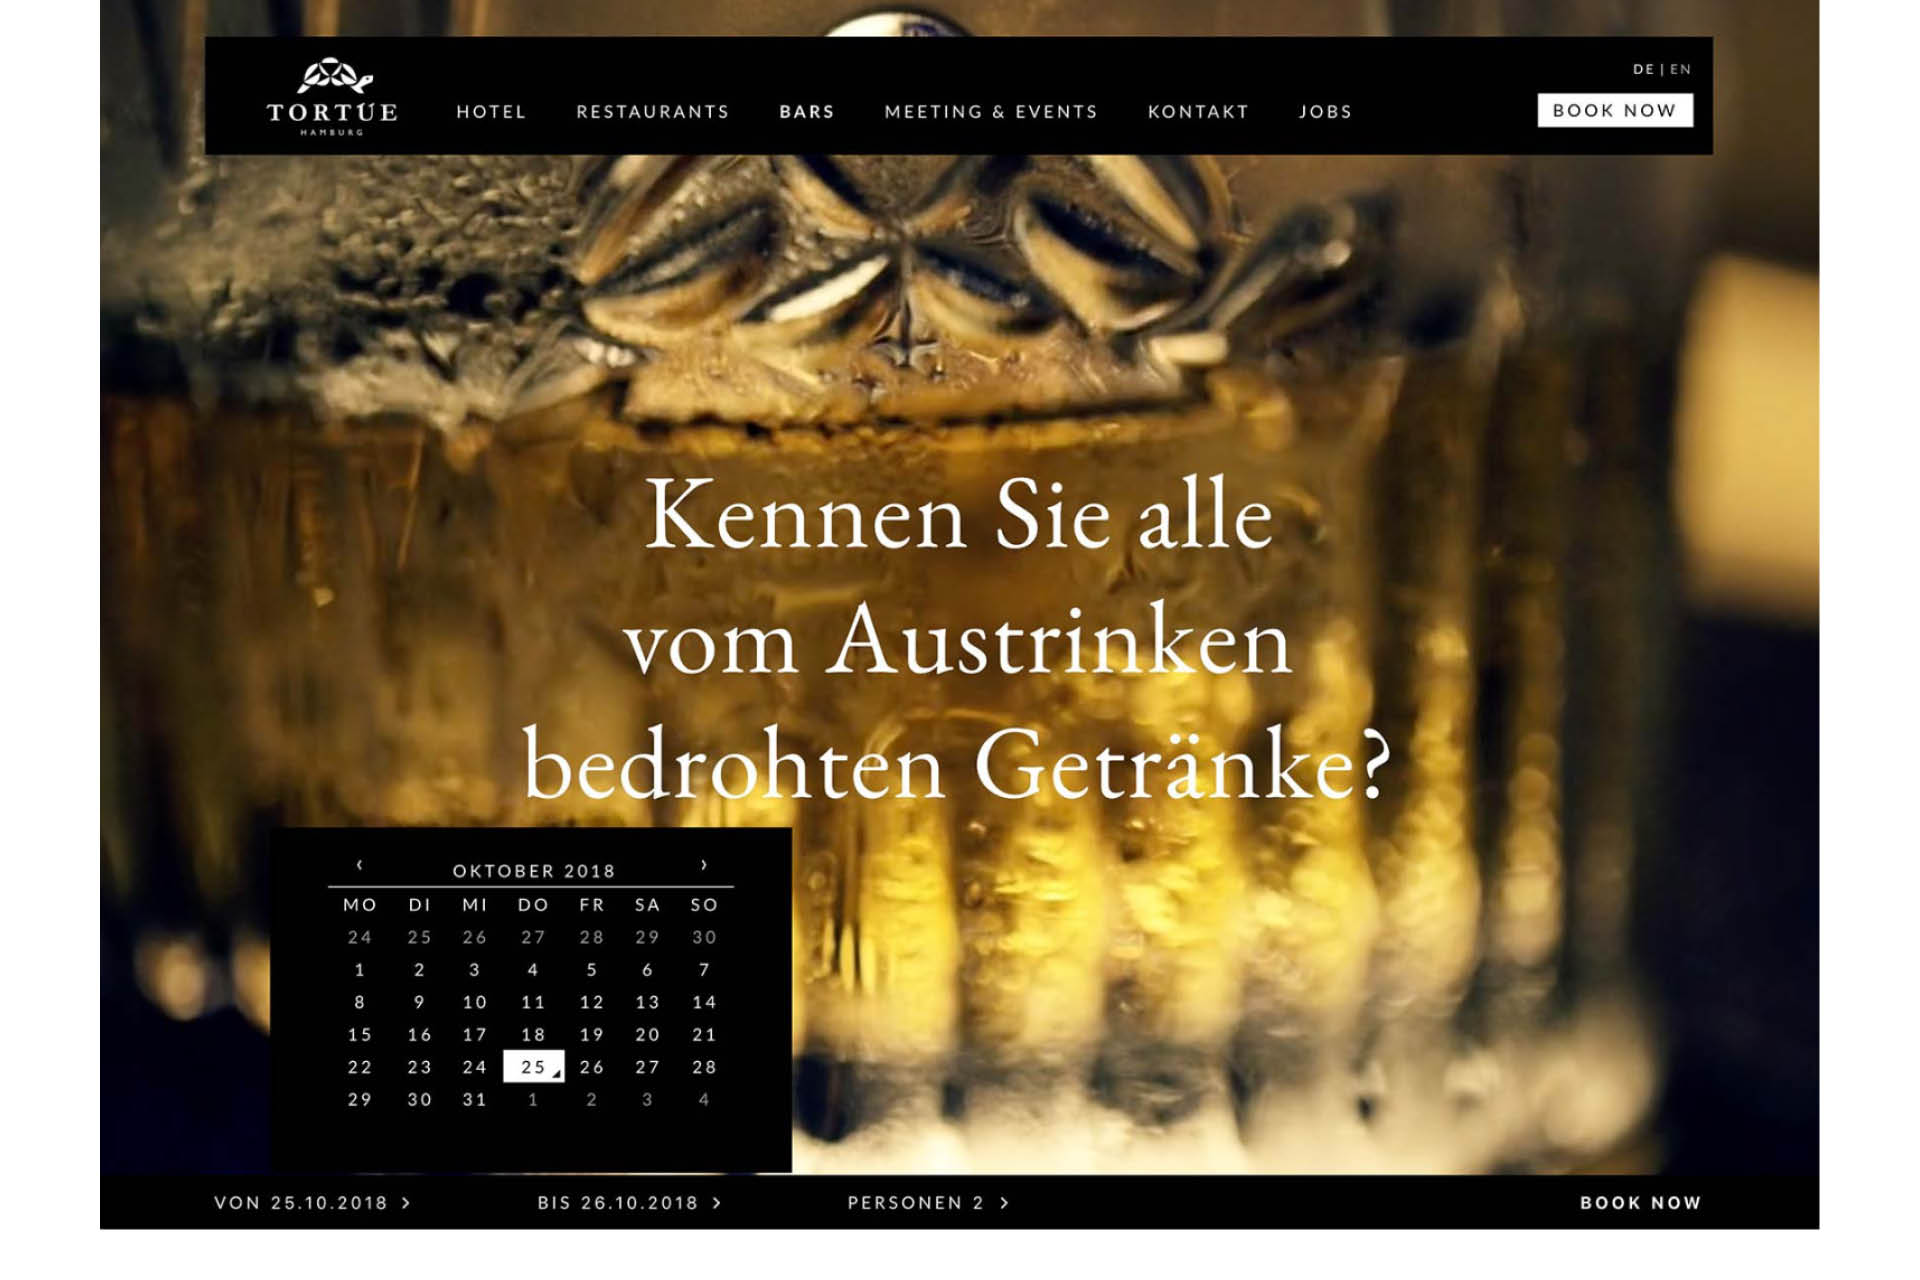 Tortue Hamburg Hotel Website Design Web Konzept